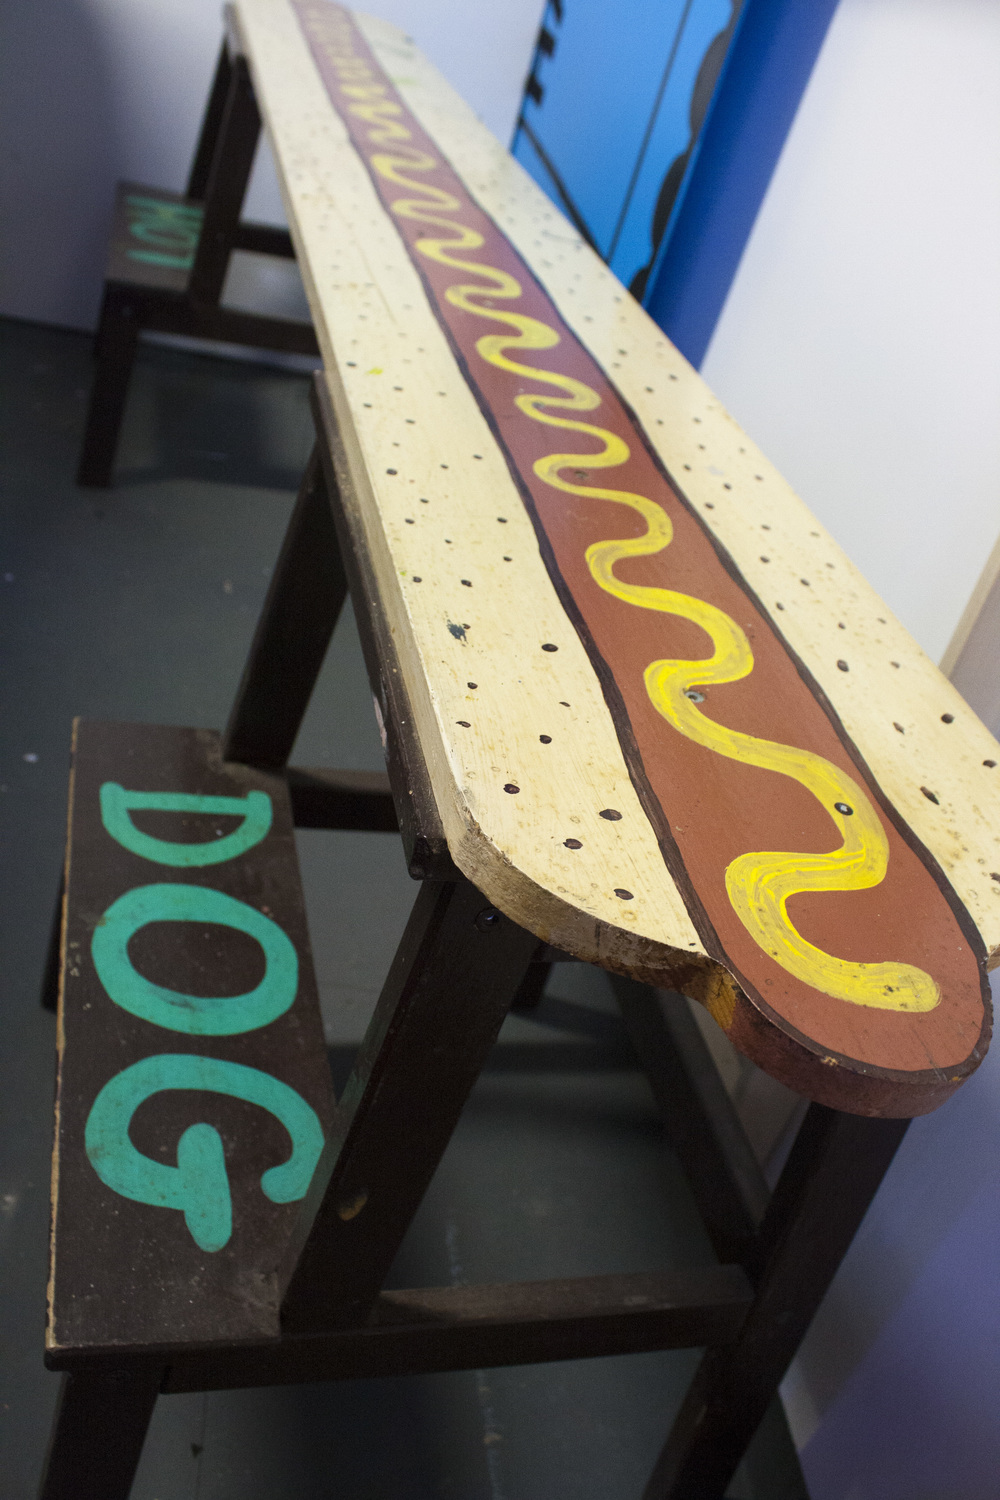 Hot Dog bench by artist Keith Jones.